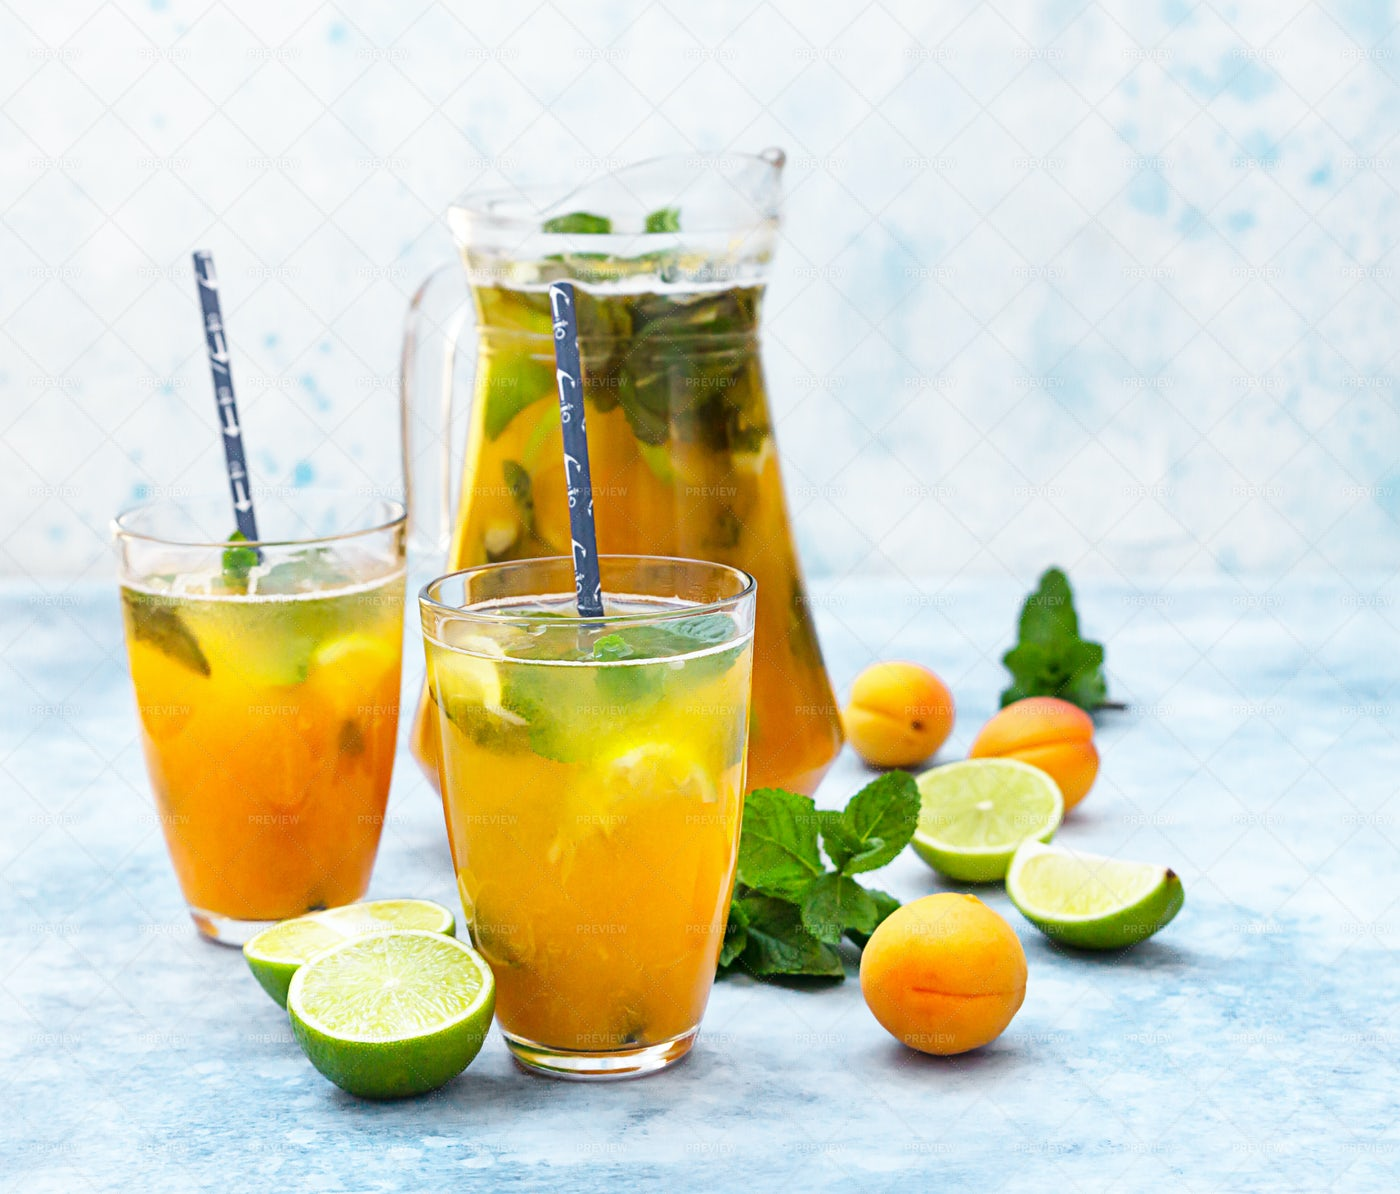 Iced Lemonade With Apricot And Mint: Stock Photos